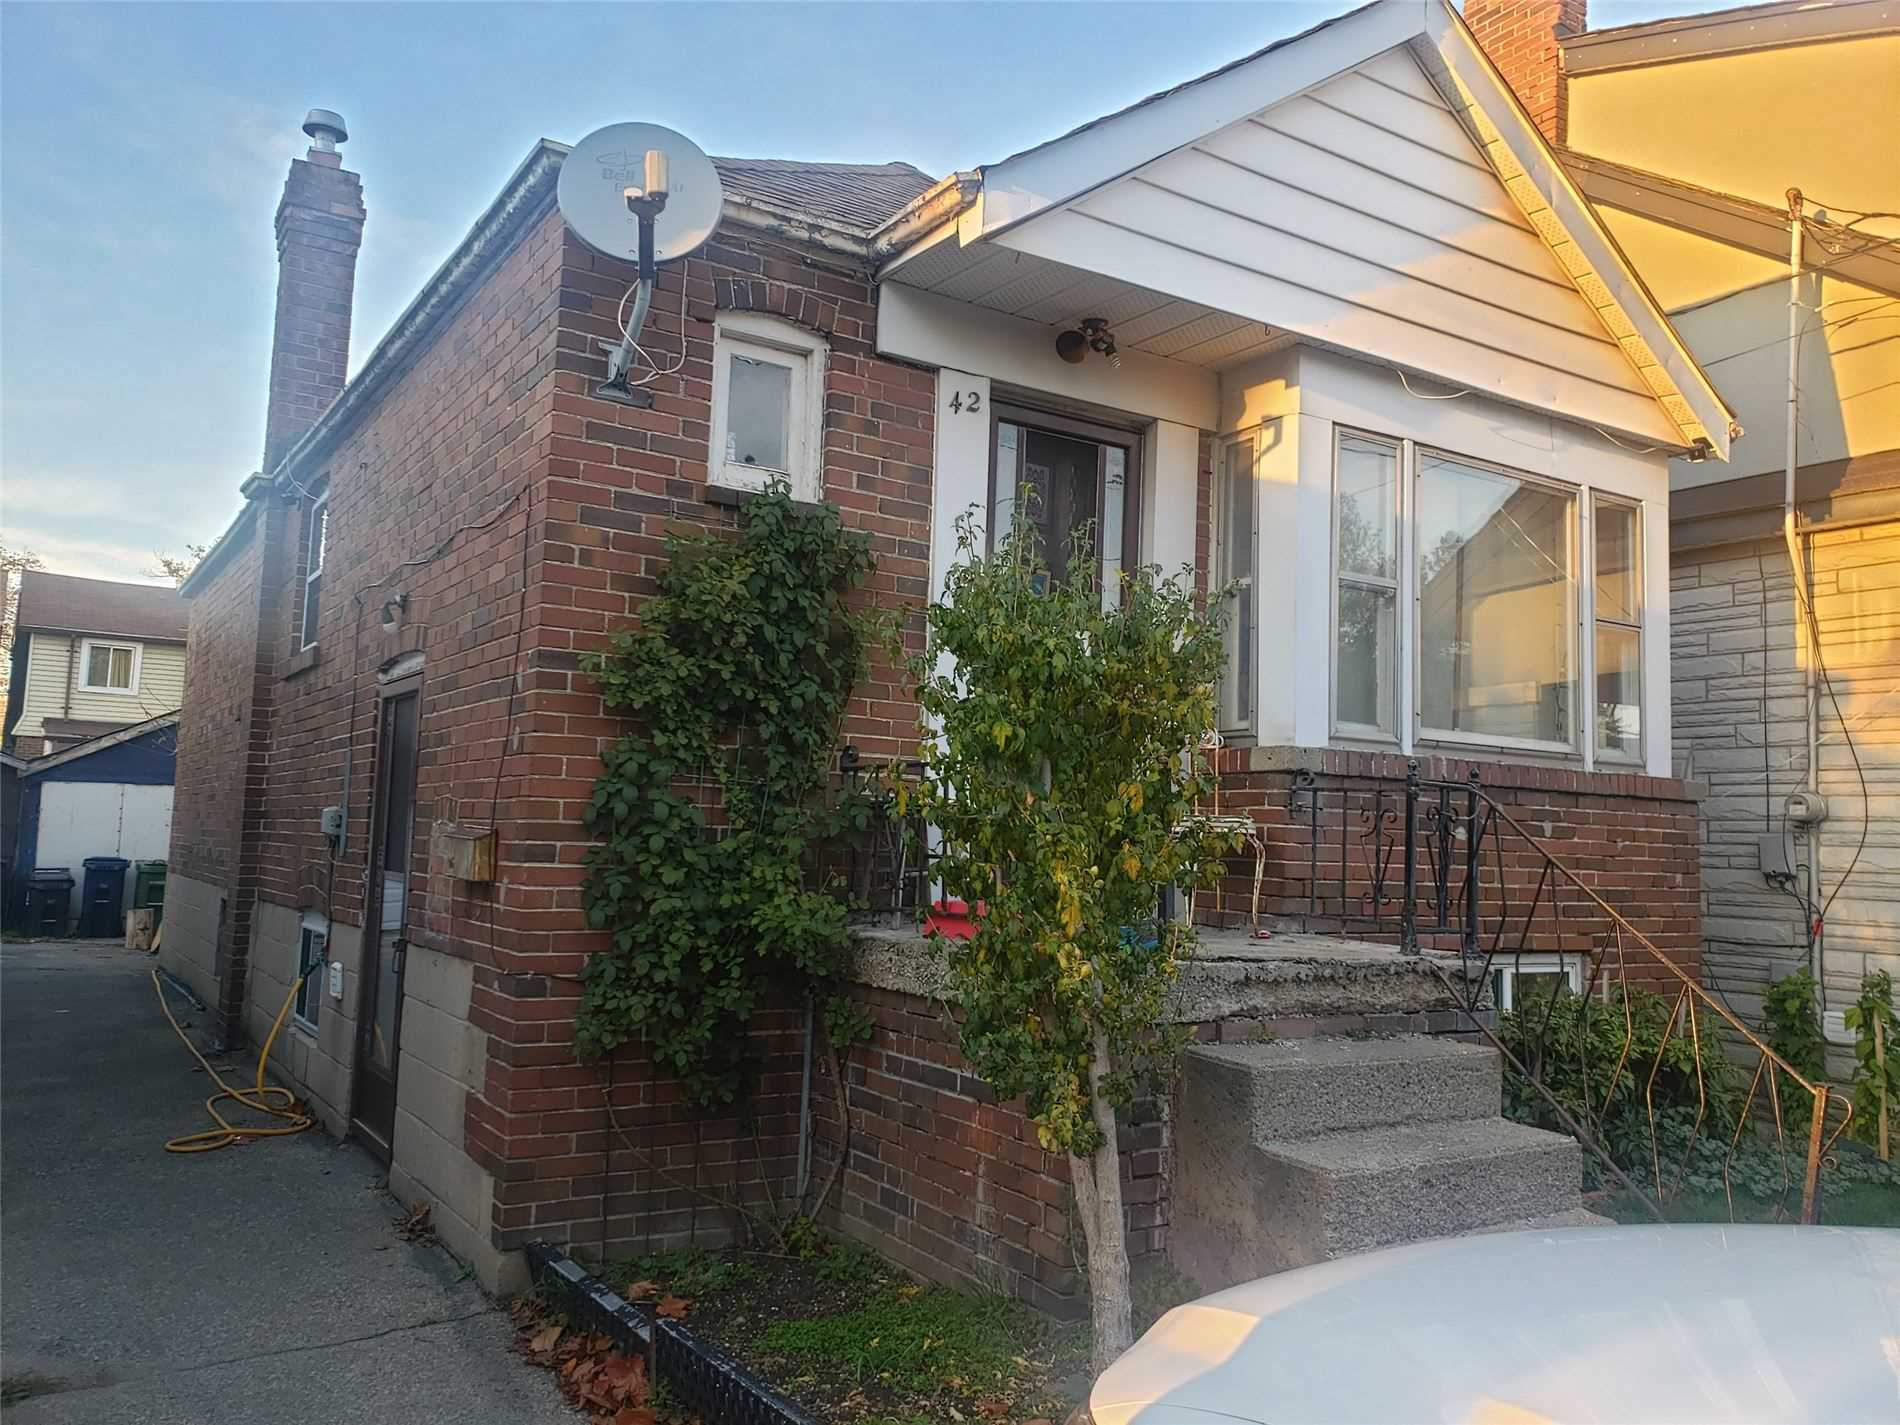 pictures of house for sale MLS: W4972015 located at 42 Craydon Ave, Toronto M6M2C7